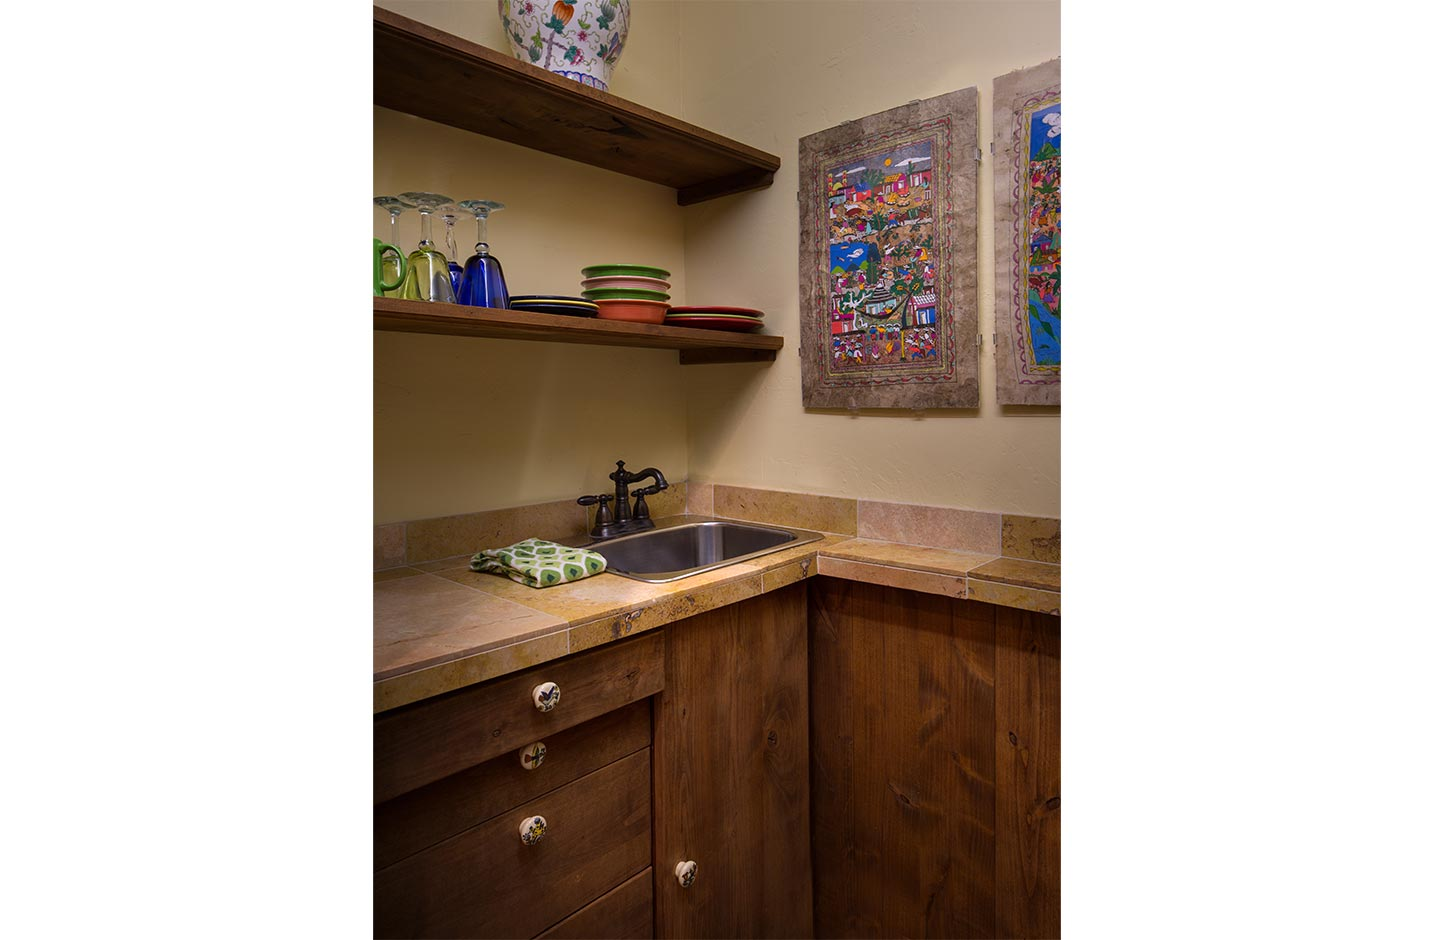 A kitchenette with shelves and dishes